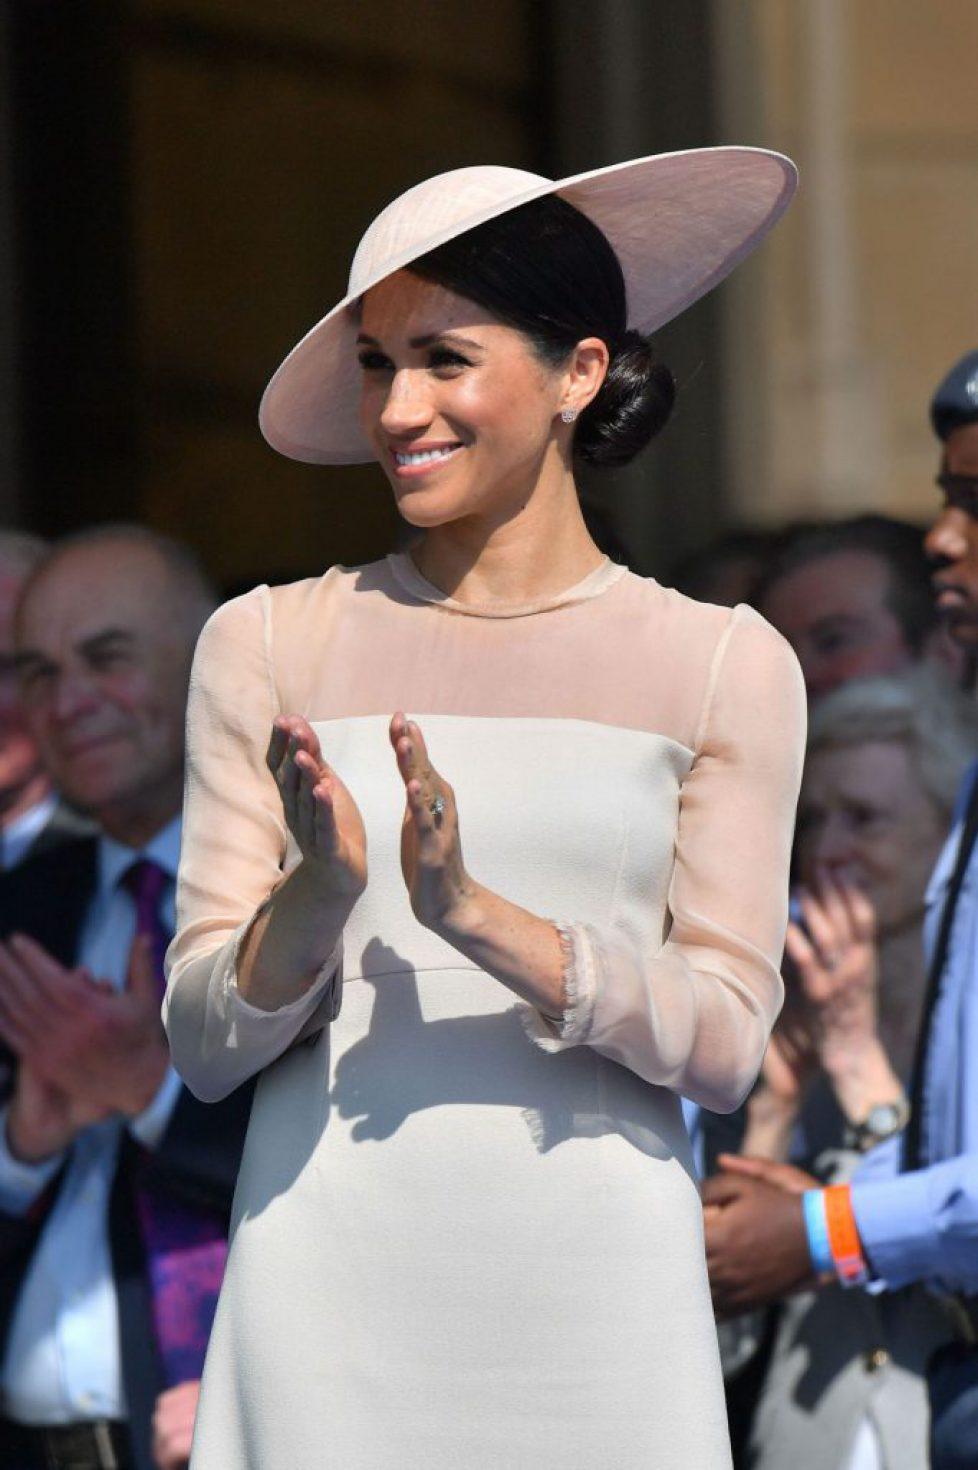 meghan-duchess-of-sussex-at-a-garden-party-at-buckingham-palace-in-london-05-22-2018-6